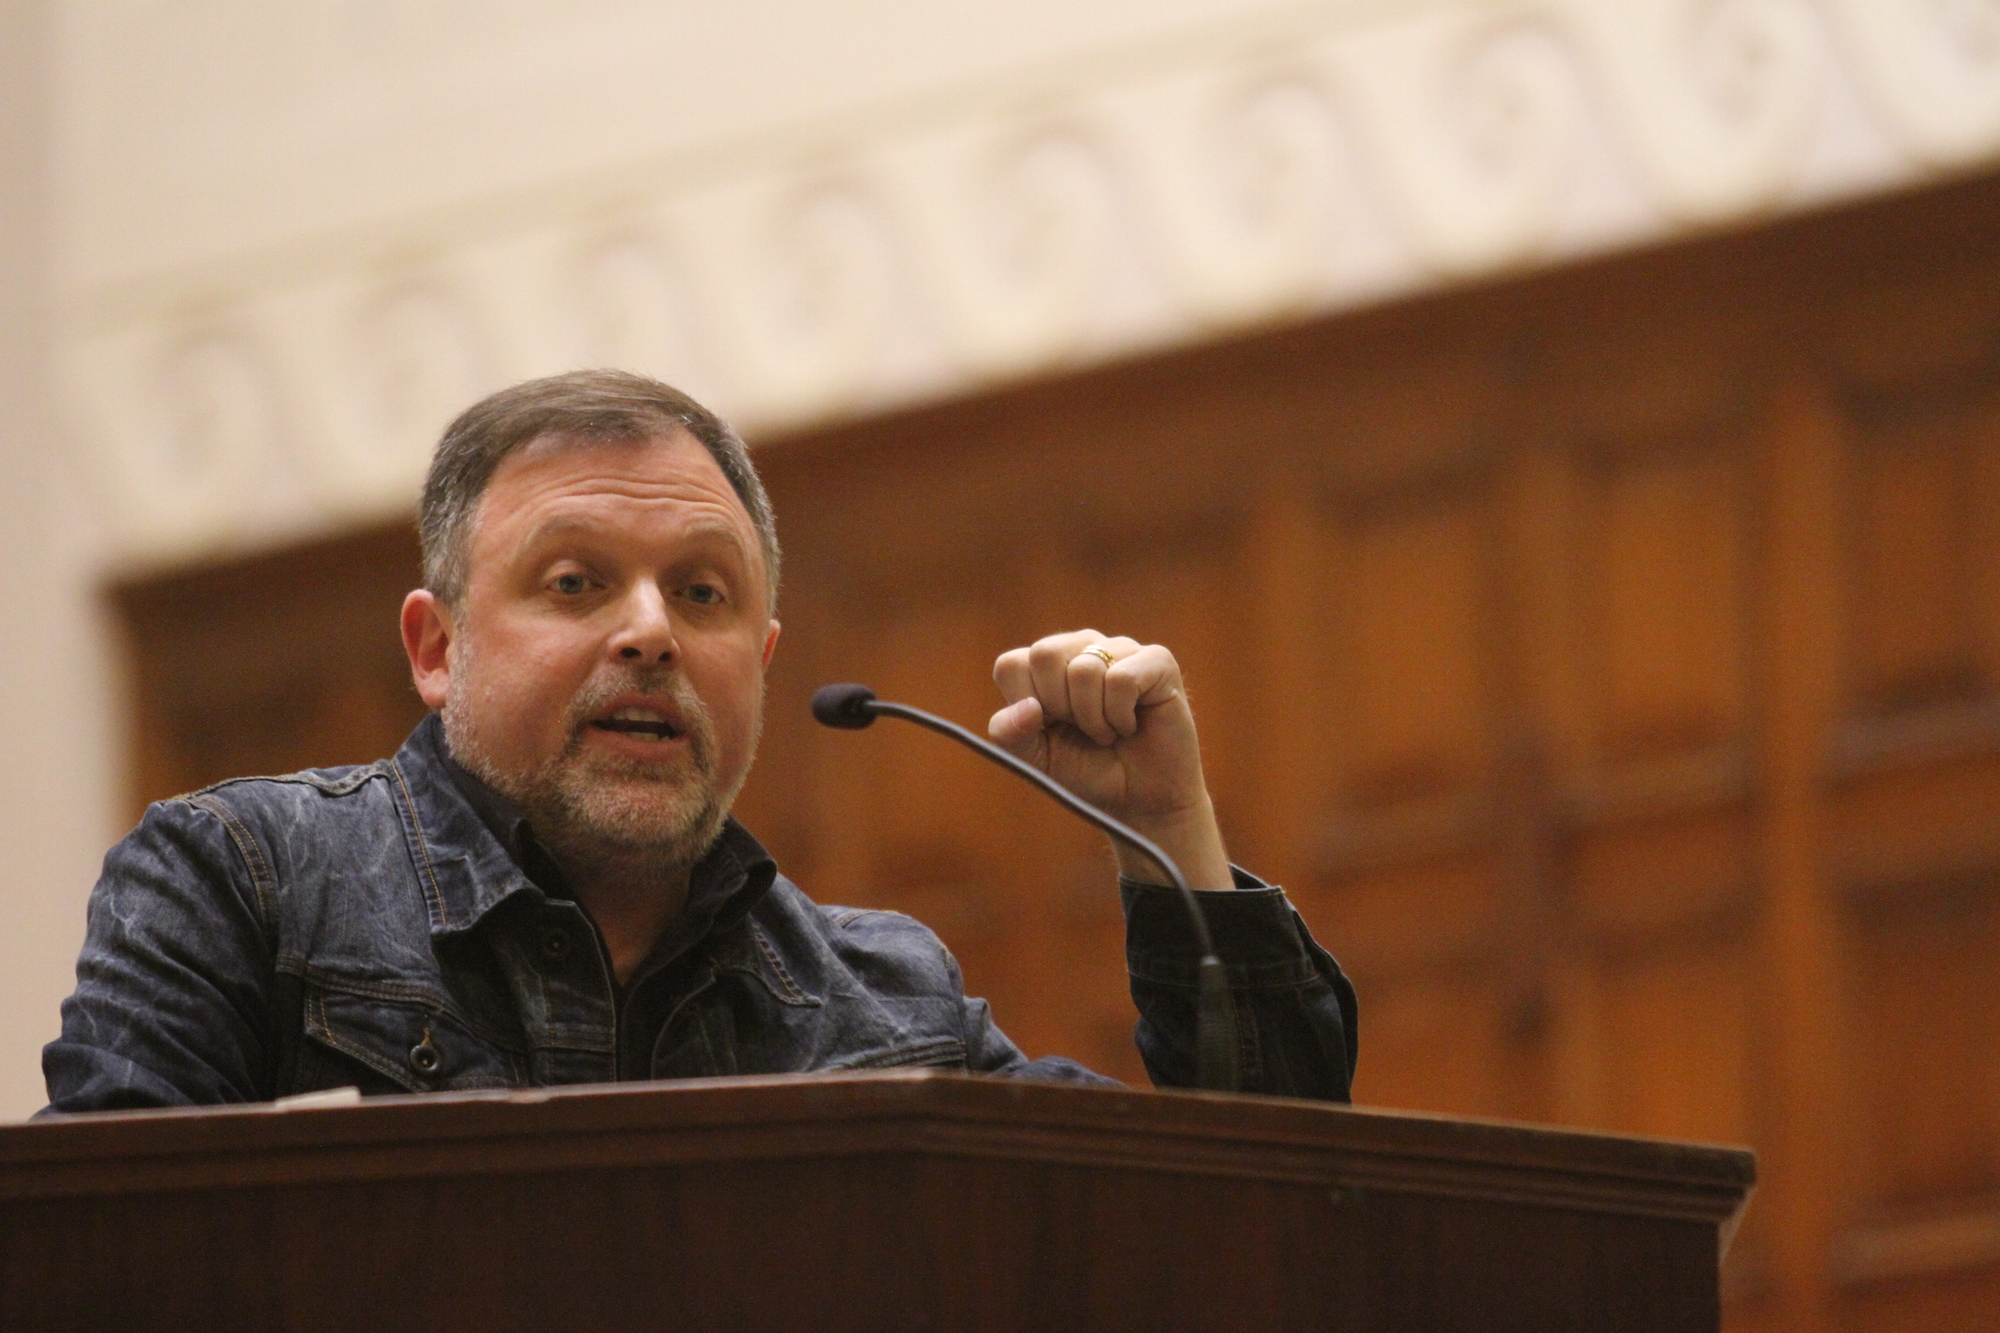 Tim Wise Speaks at the University of Redlands